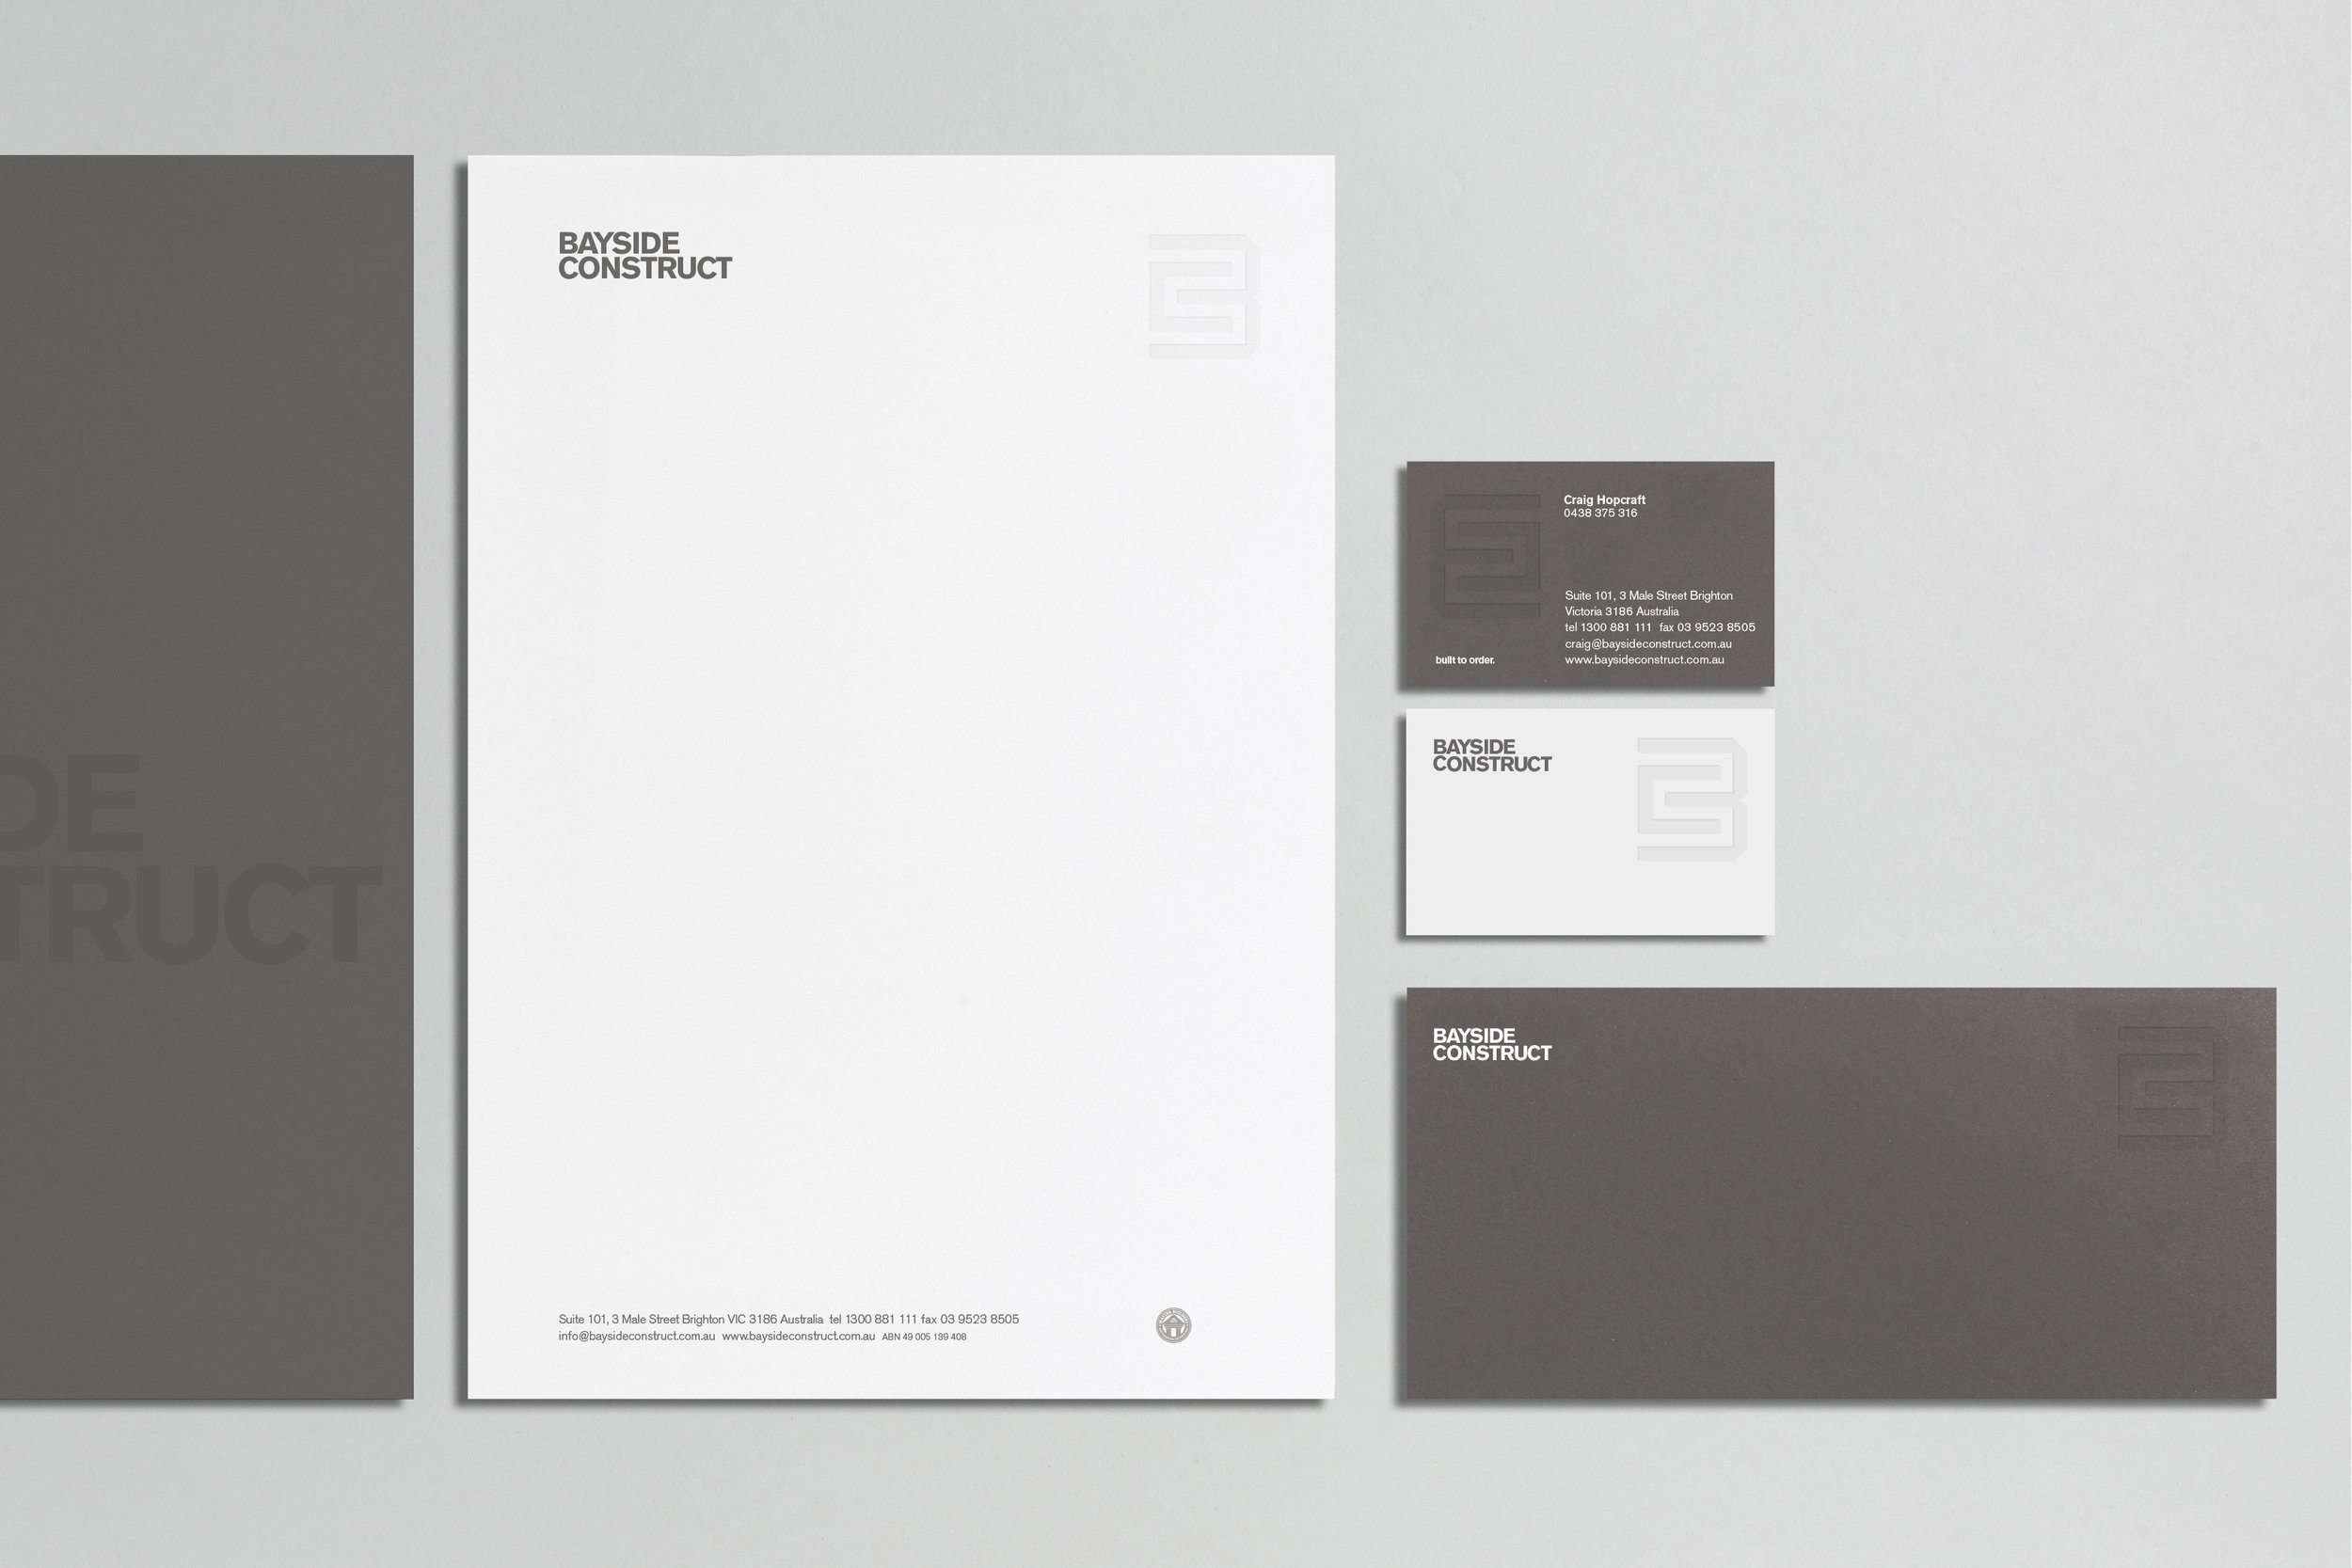 bayside Construct identity collateral